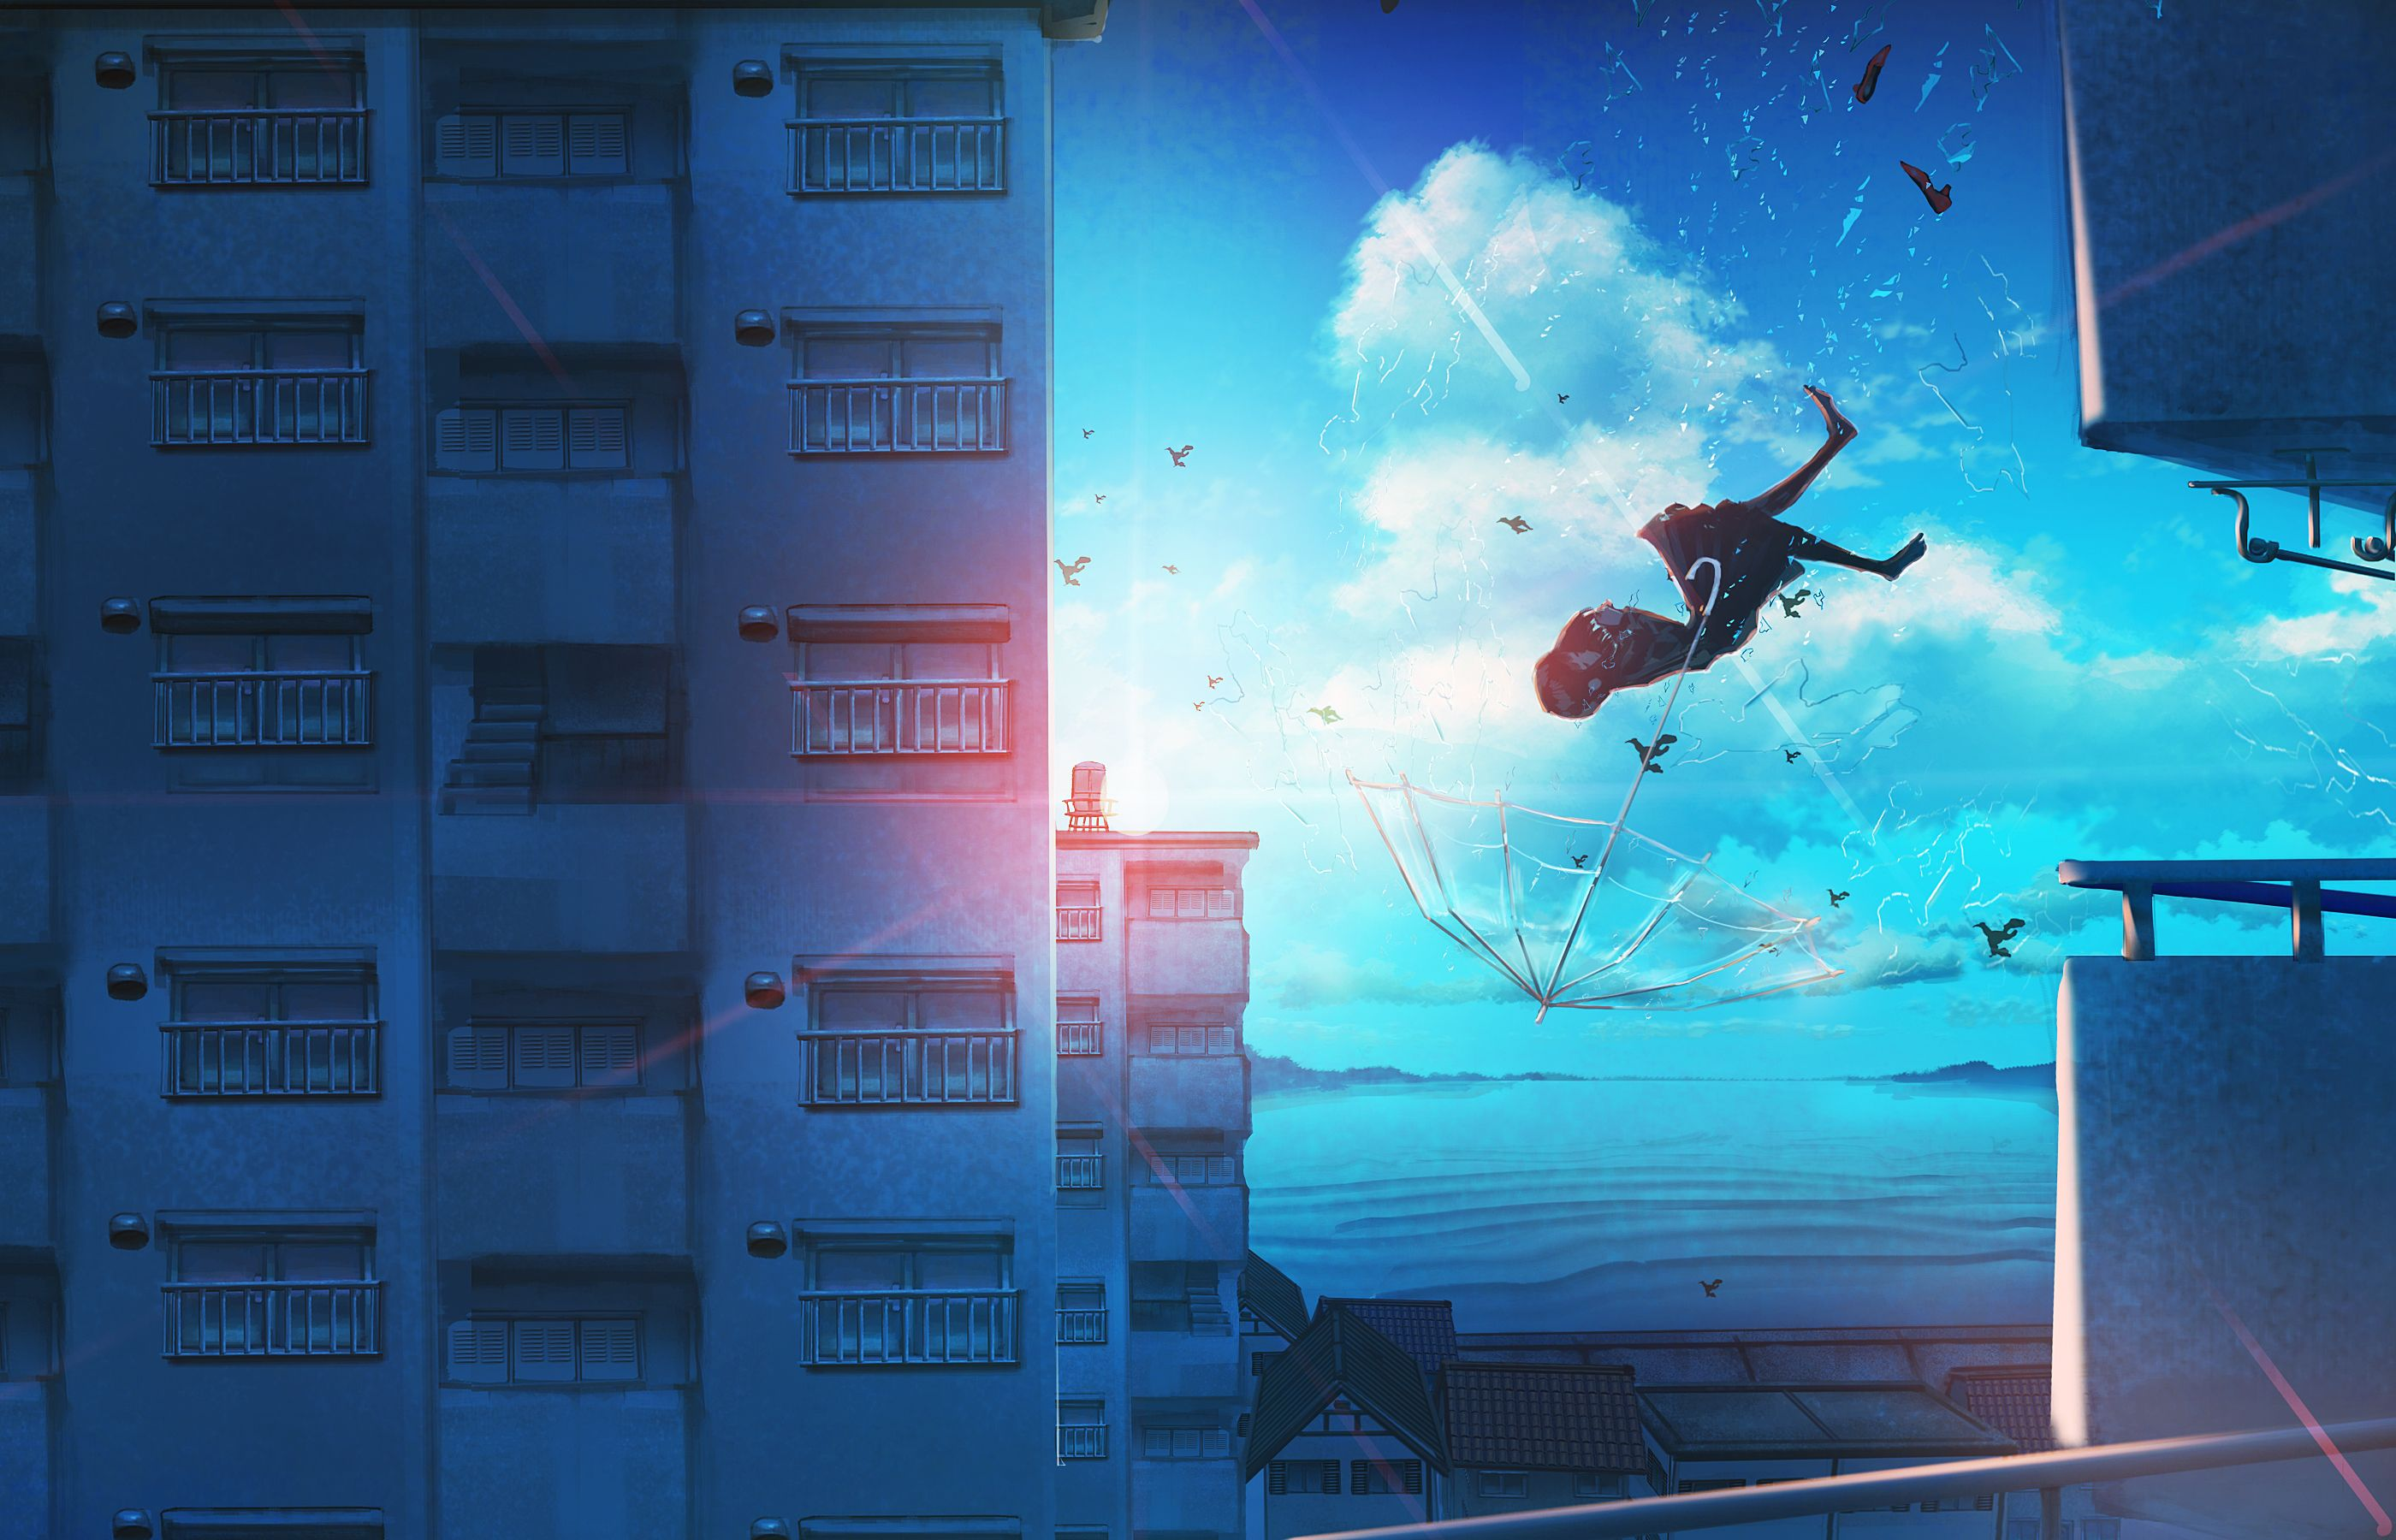 Falling Anime Wallpapers - Top Free Falling Anime Backgrounds